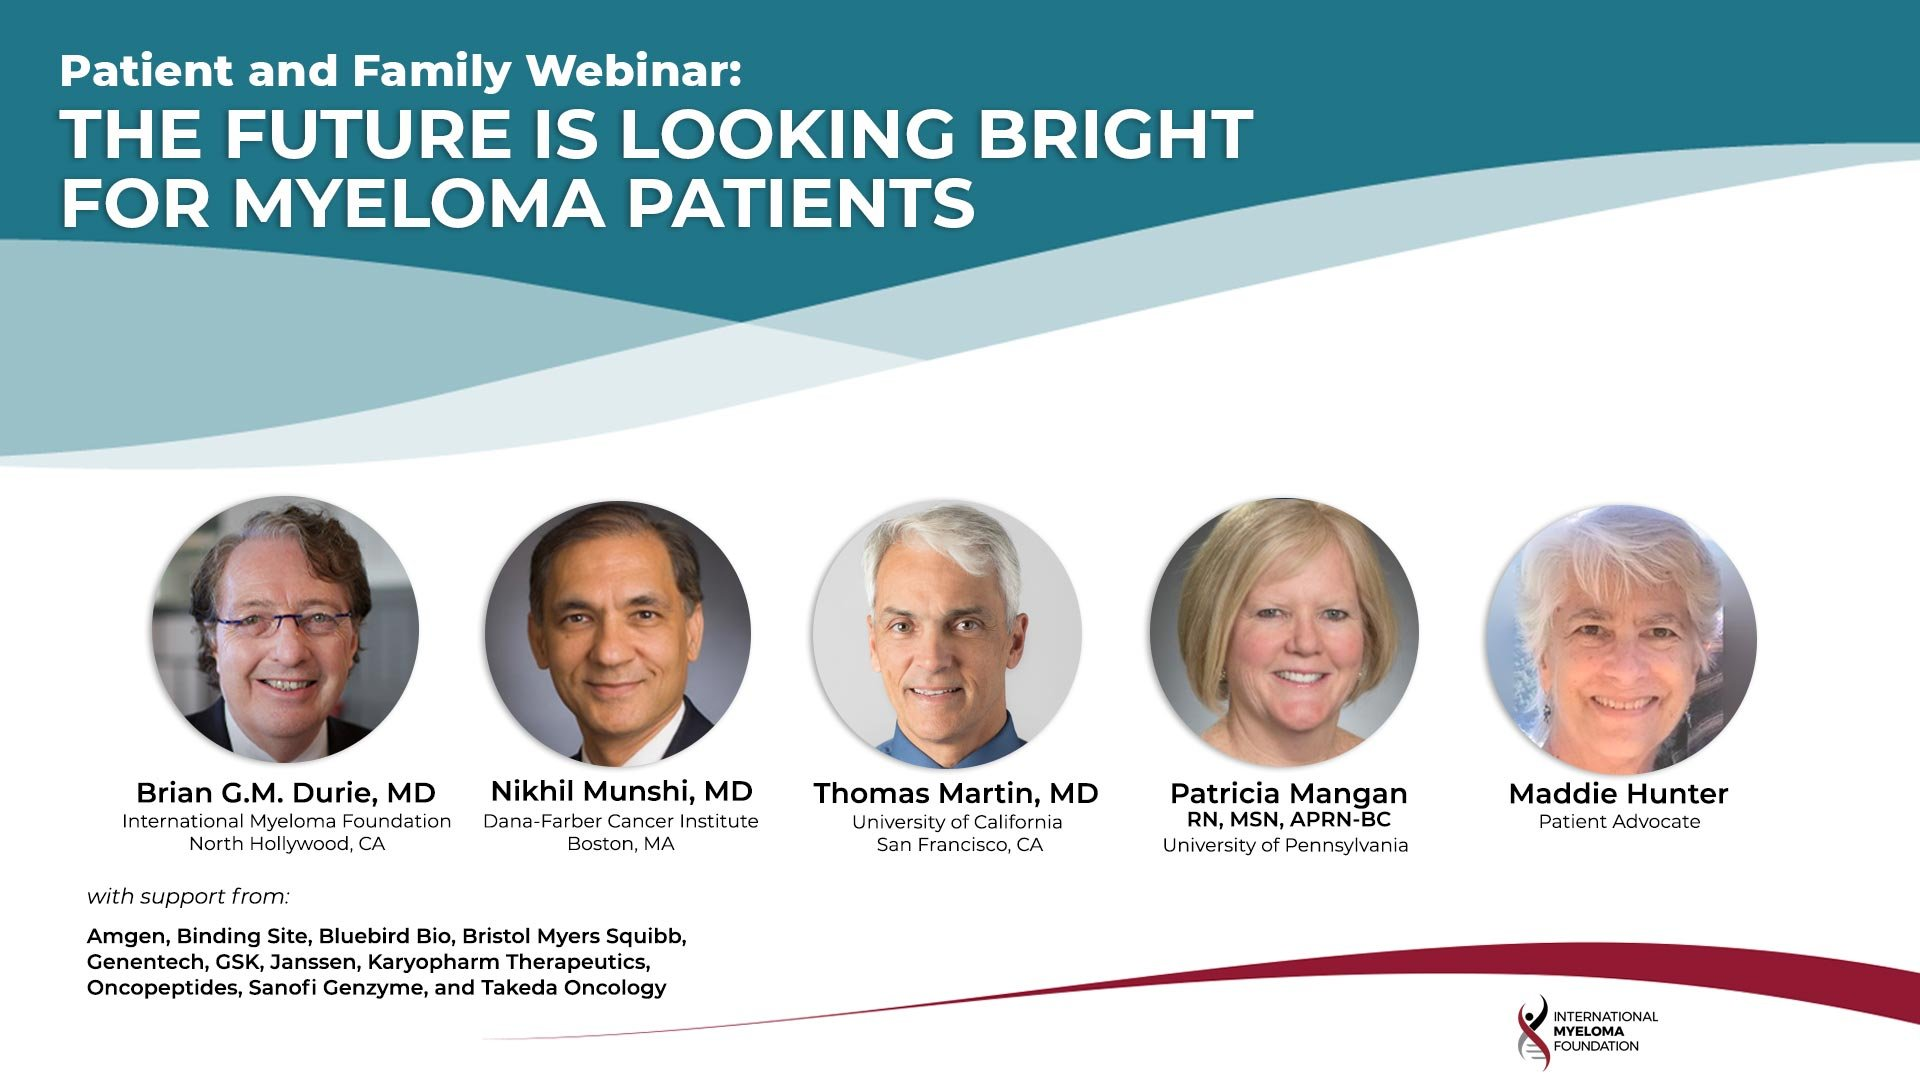 patient and family webinar headshots